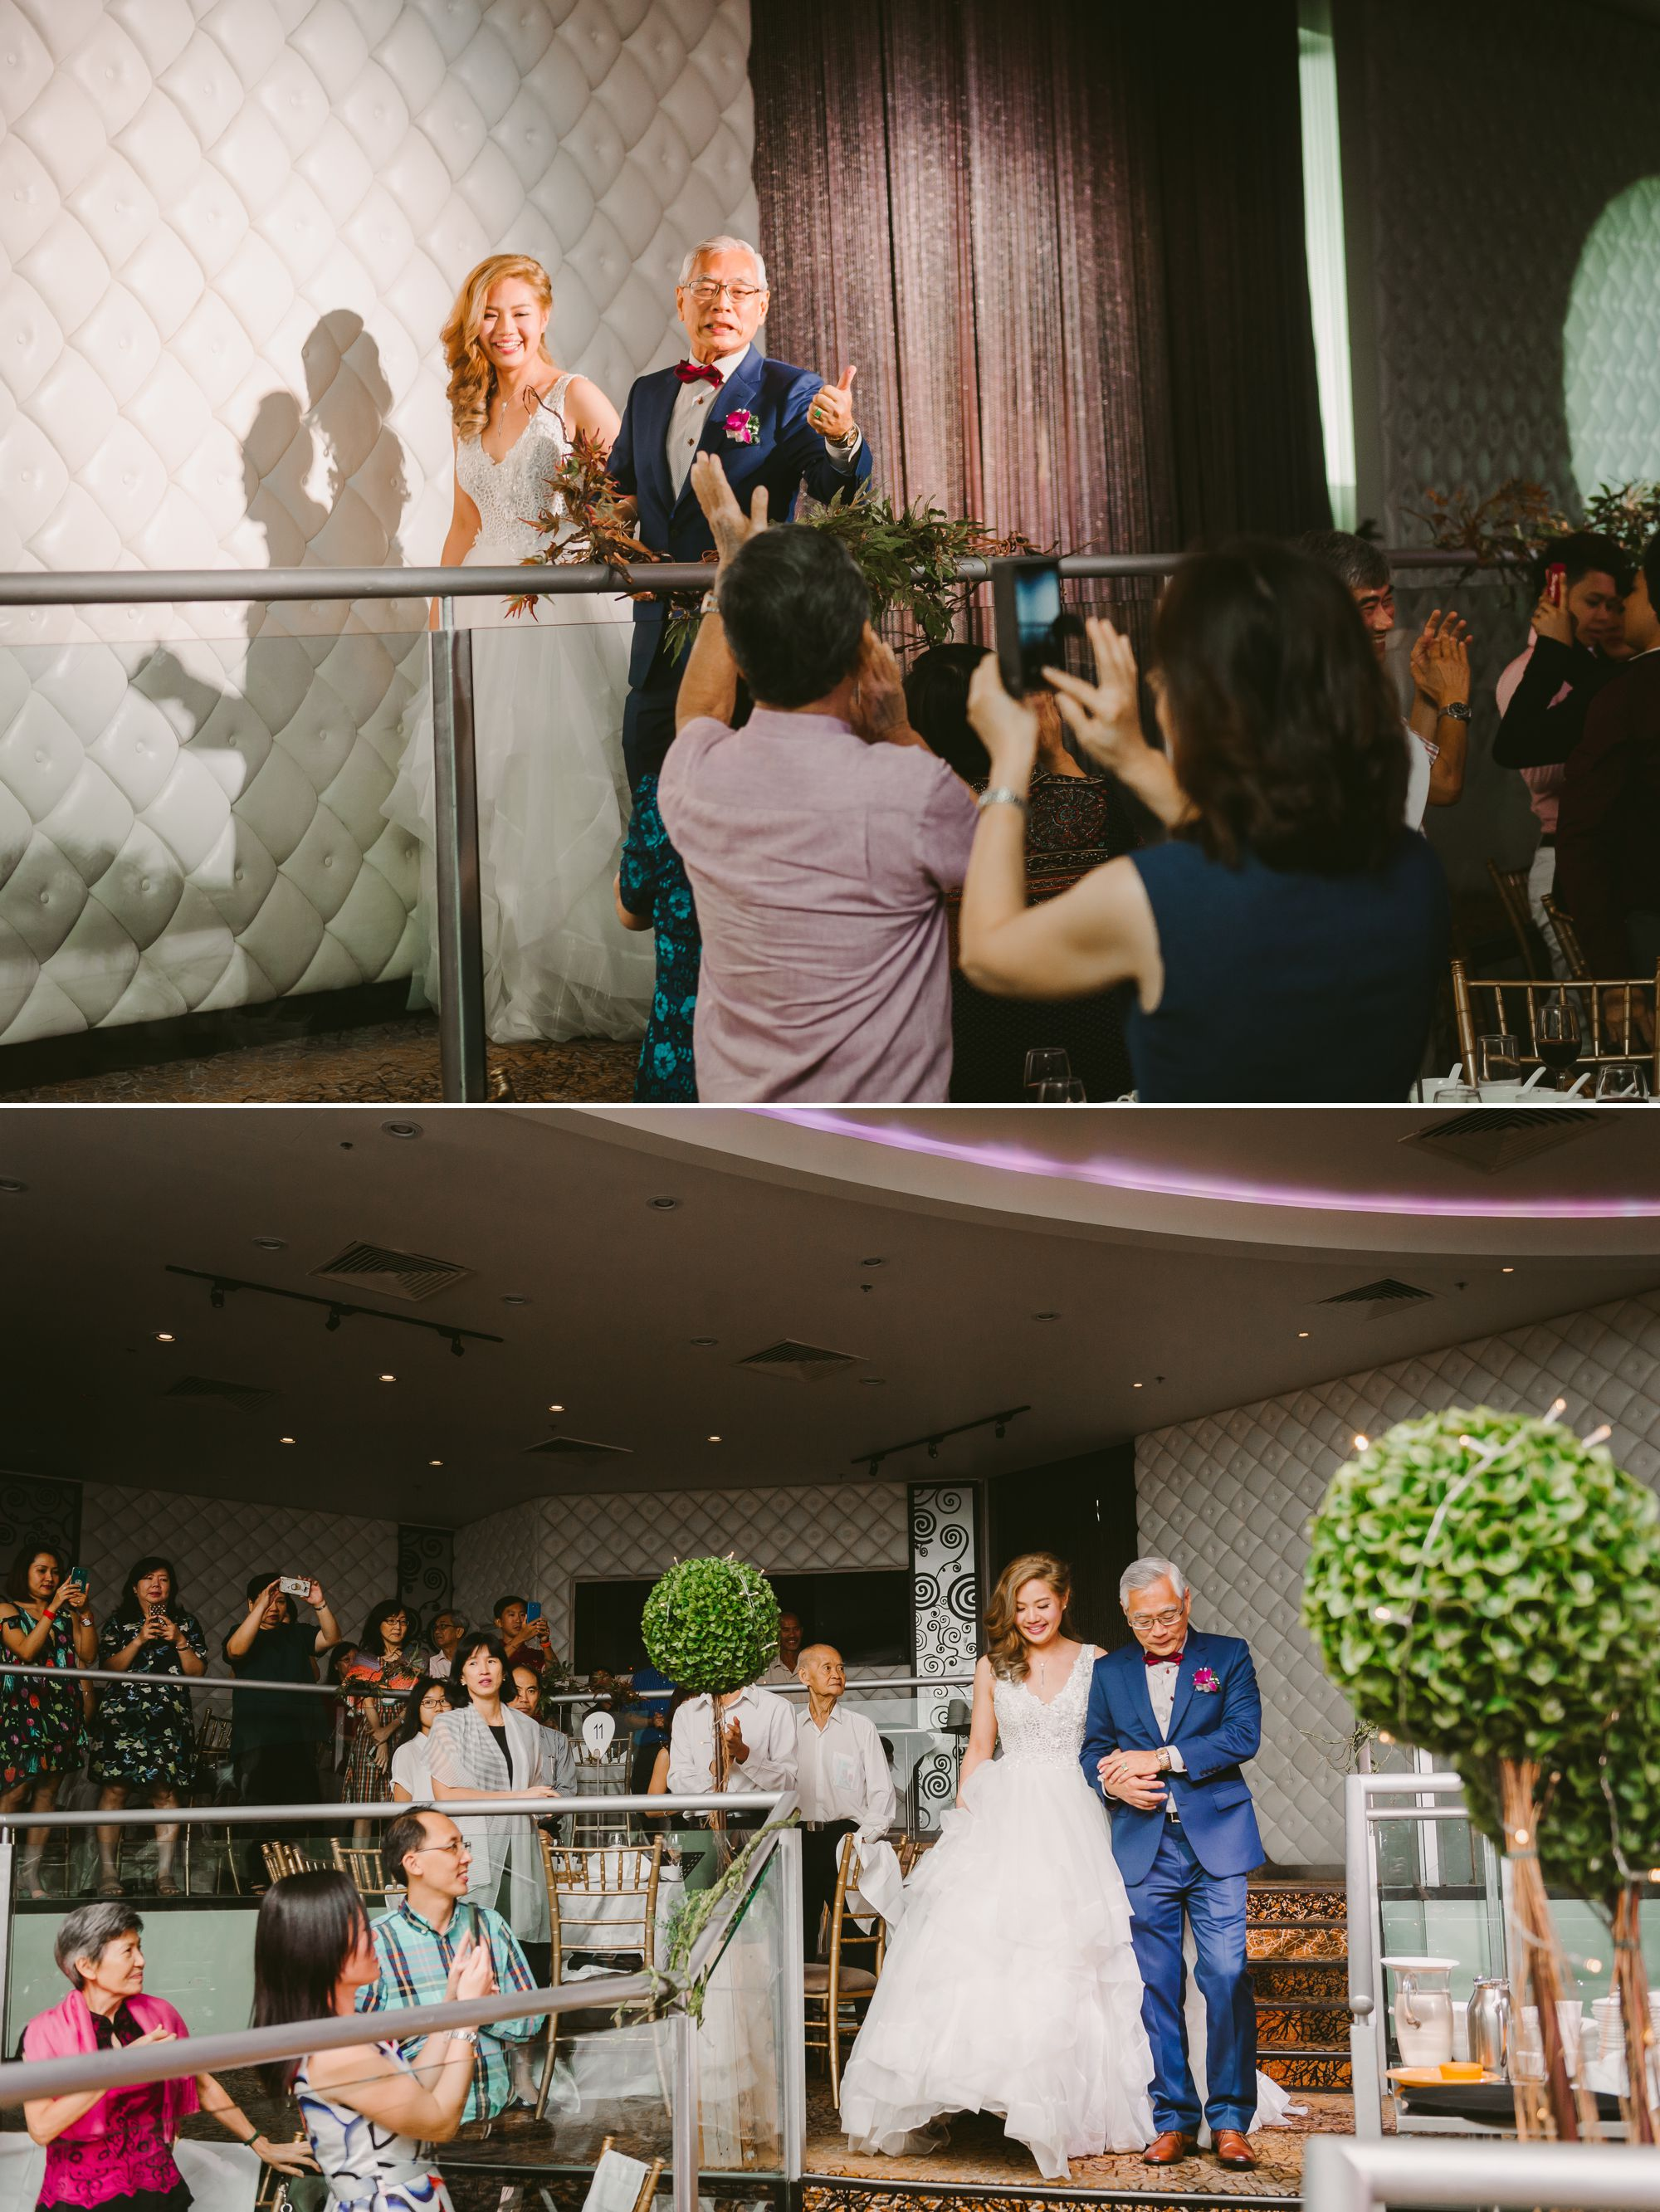 wedding_photographer_singapore 34.jpg